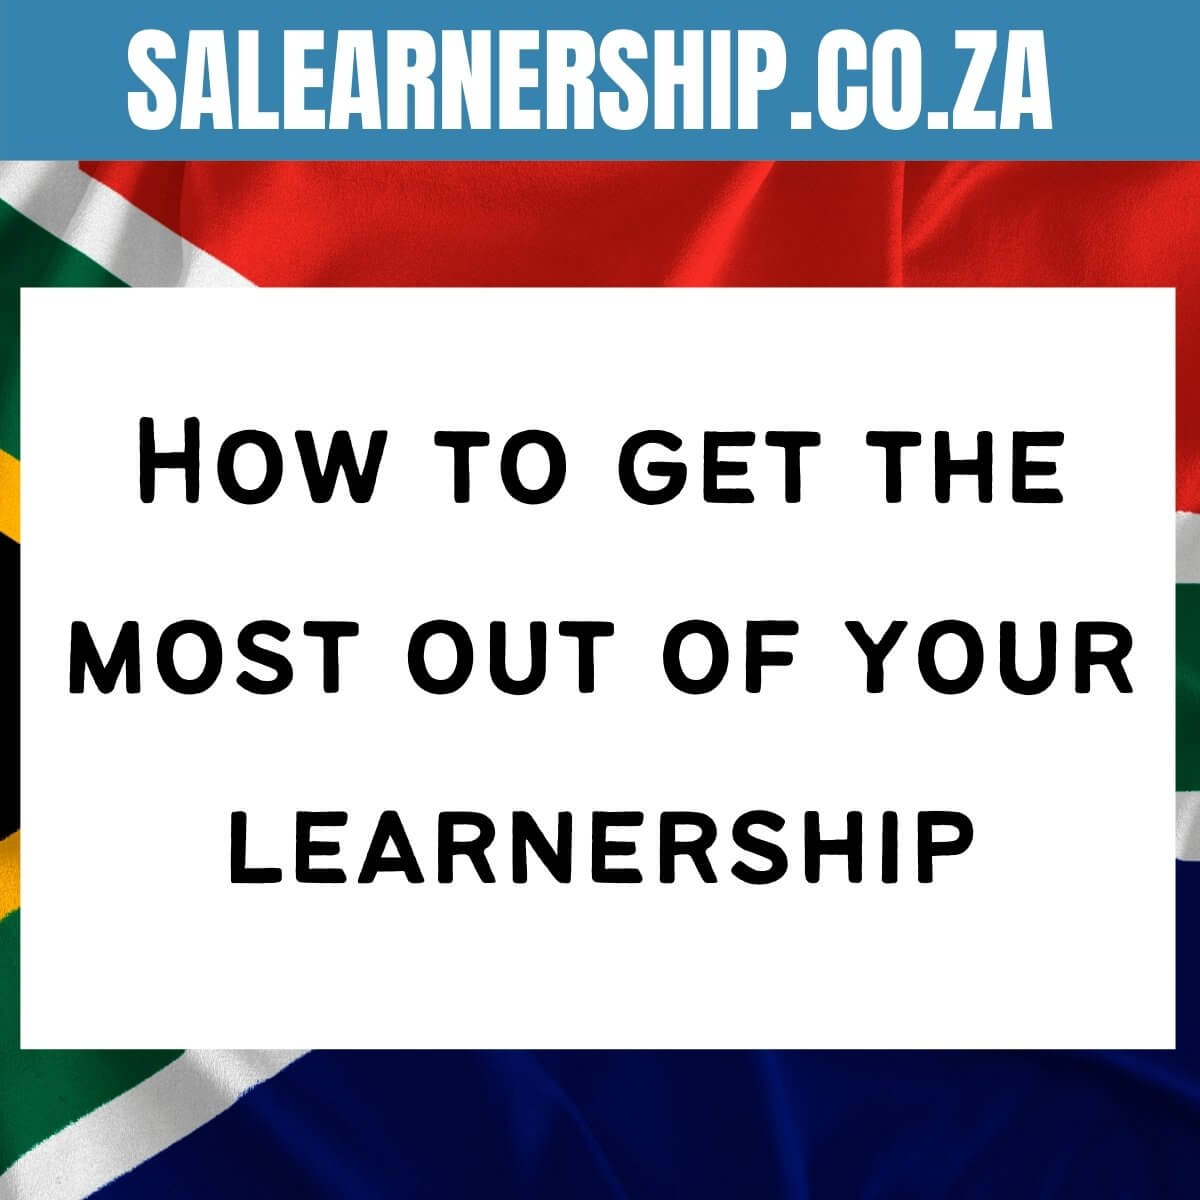 How to get the most out of your learnership